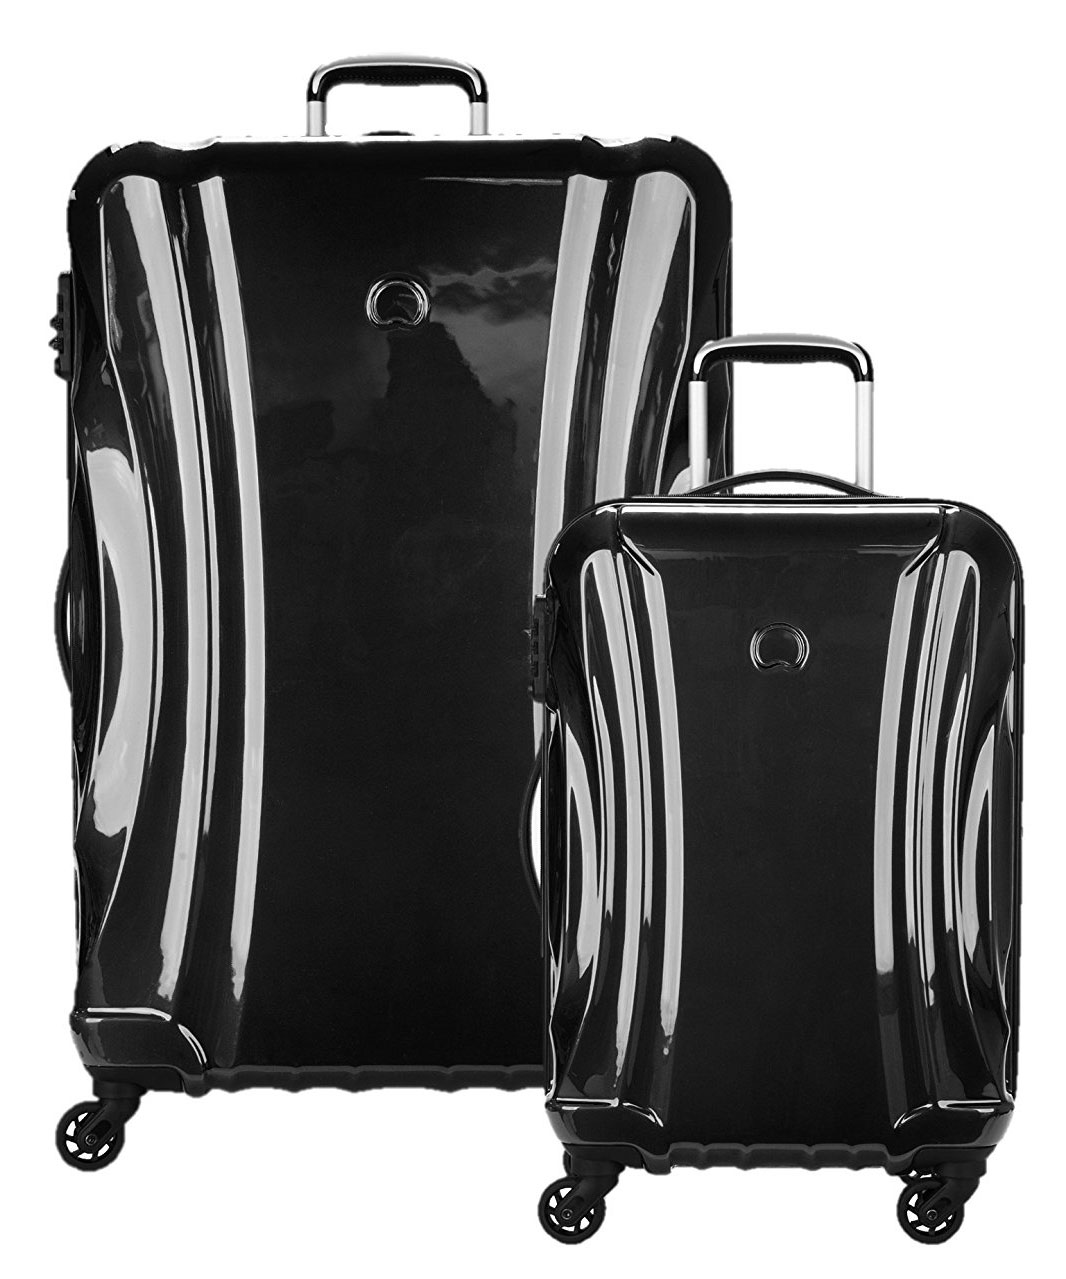 Delsey Luggage Passenger Lite 2-Piece Set